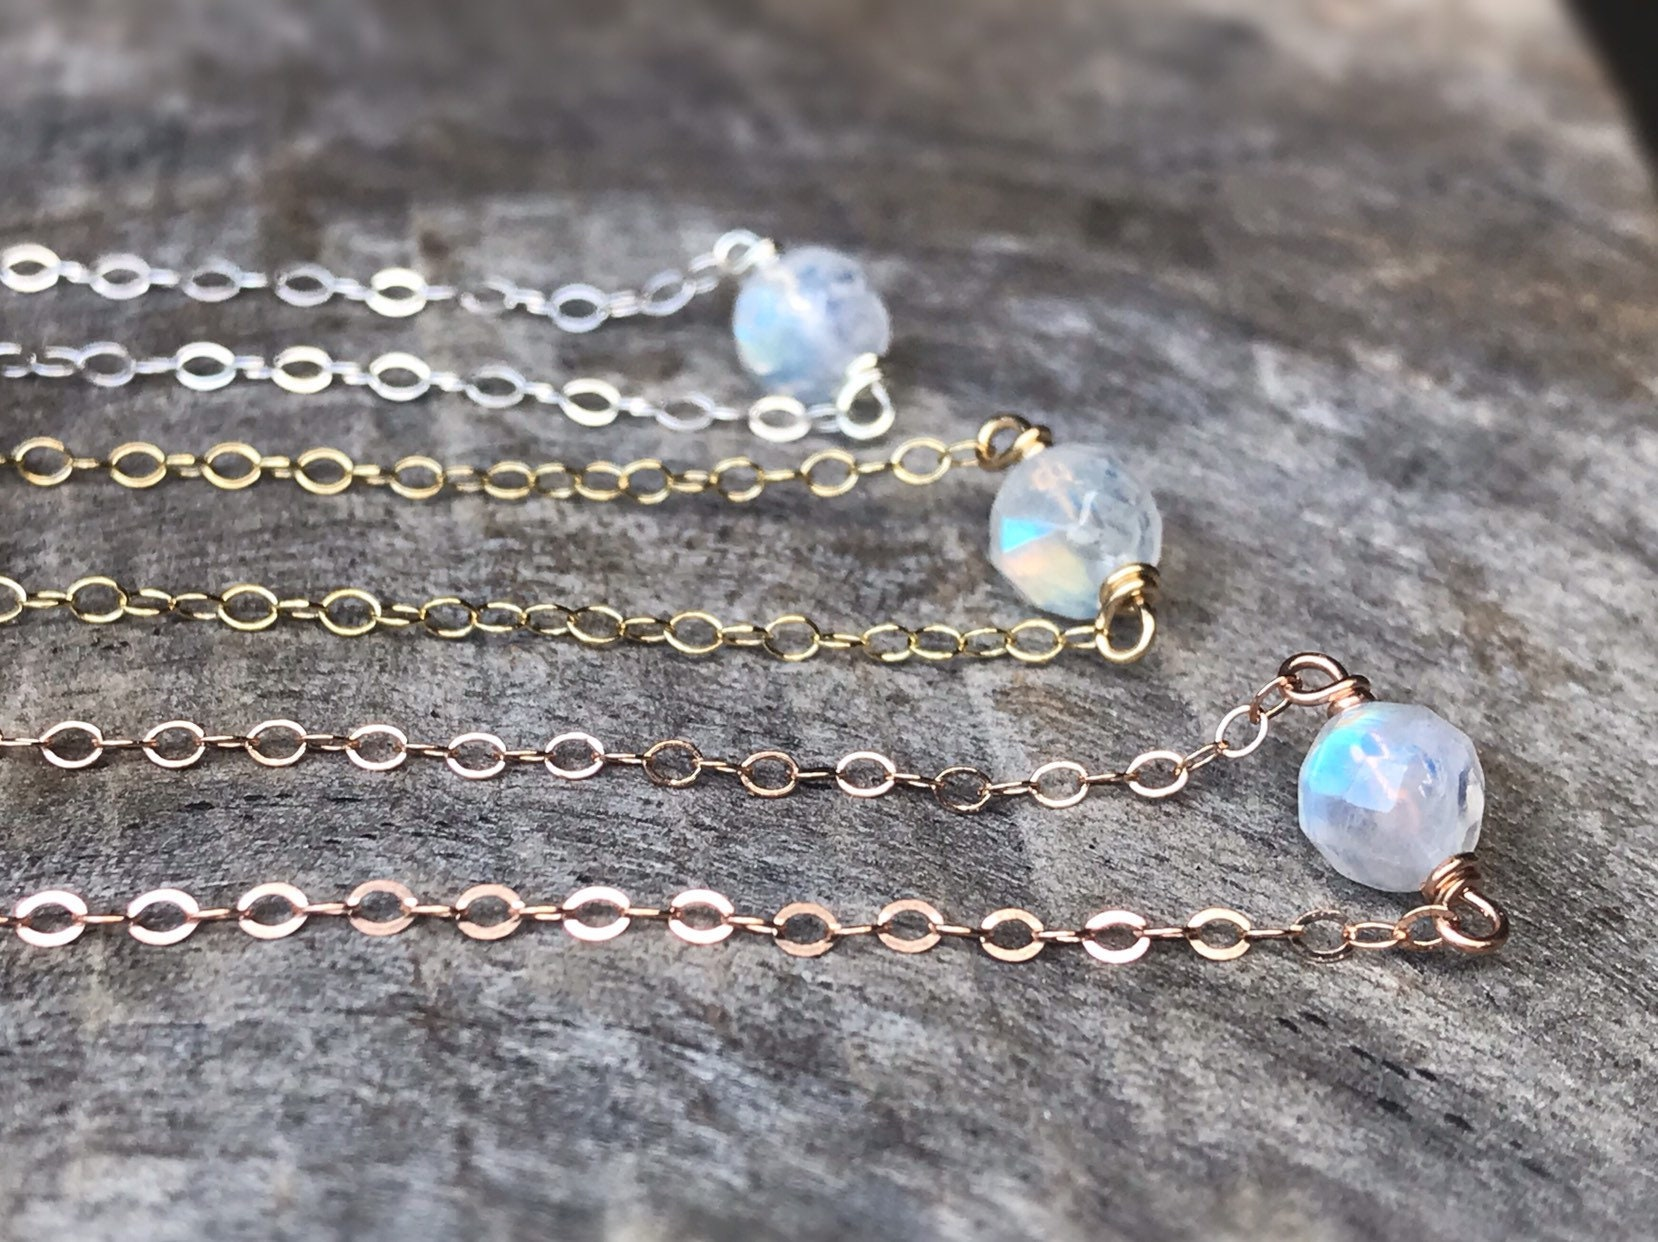 15ffe816bfa1a9 Tiny June Birthstone Necklace - Genuine Faceted Rainbow Moonstone